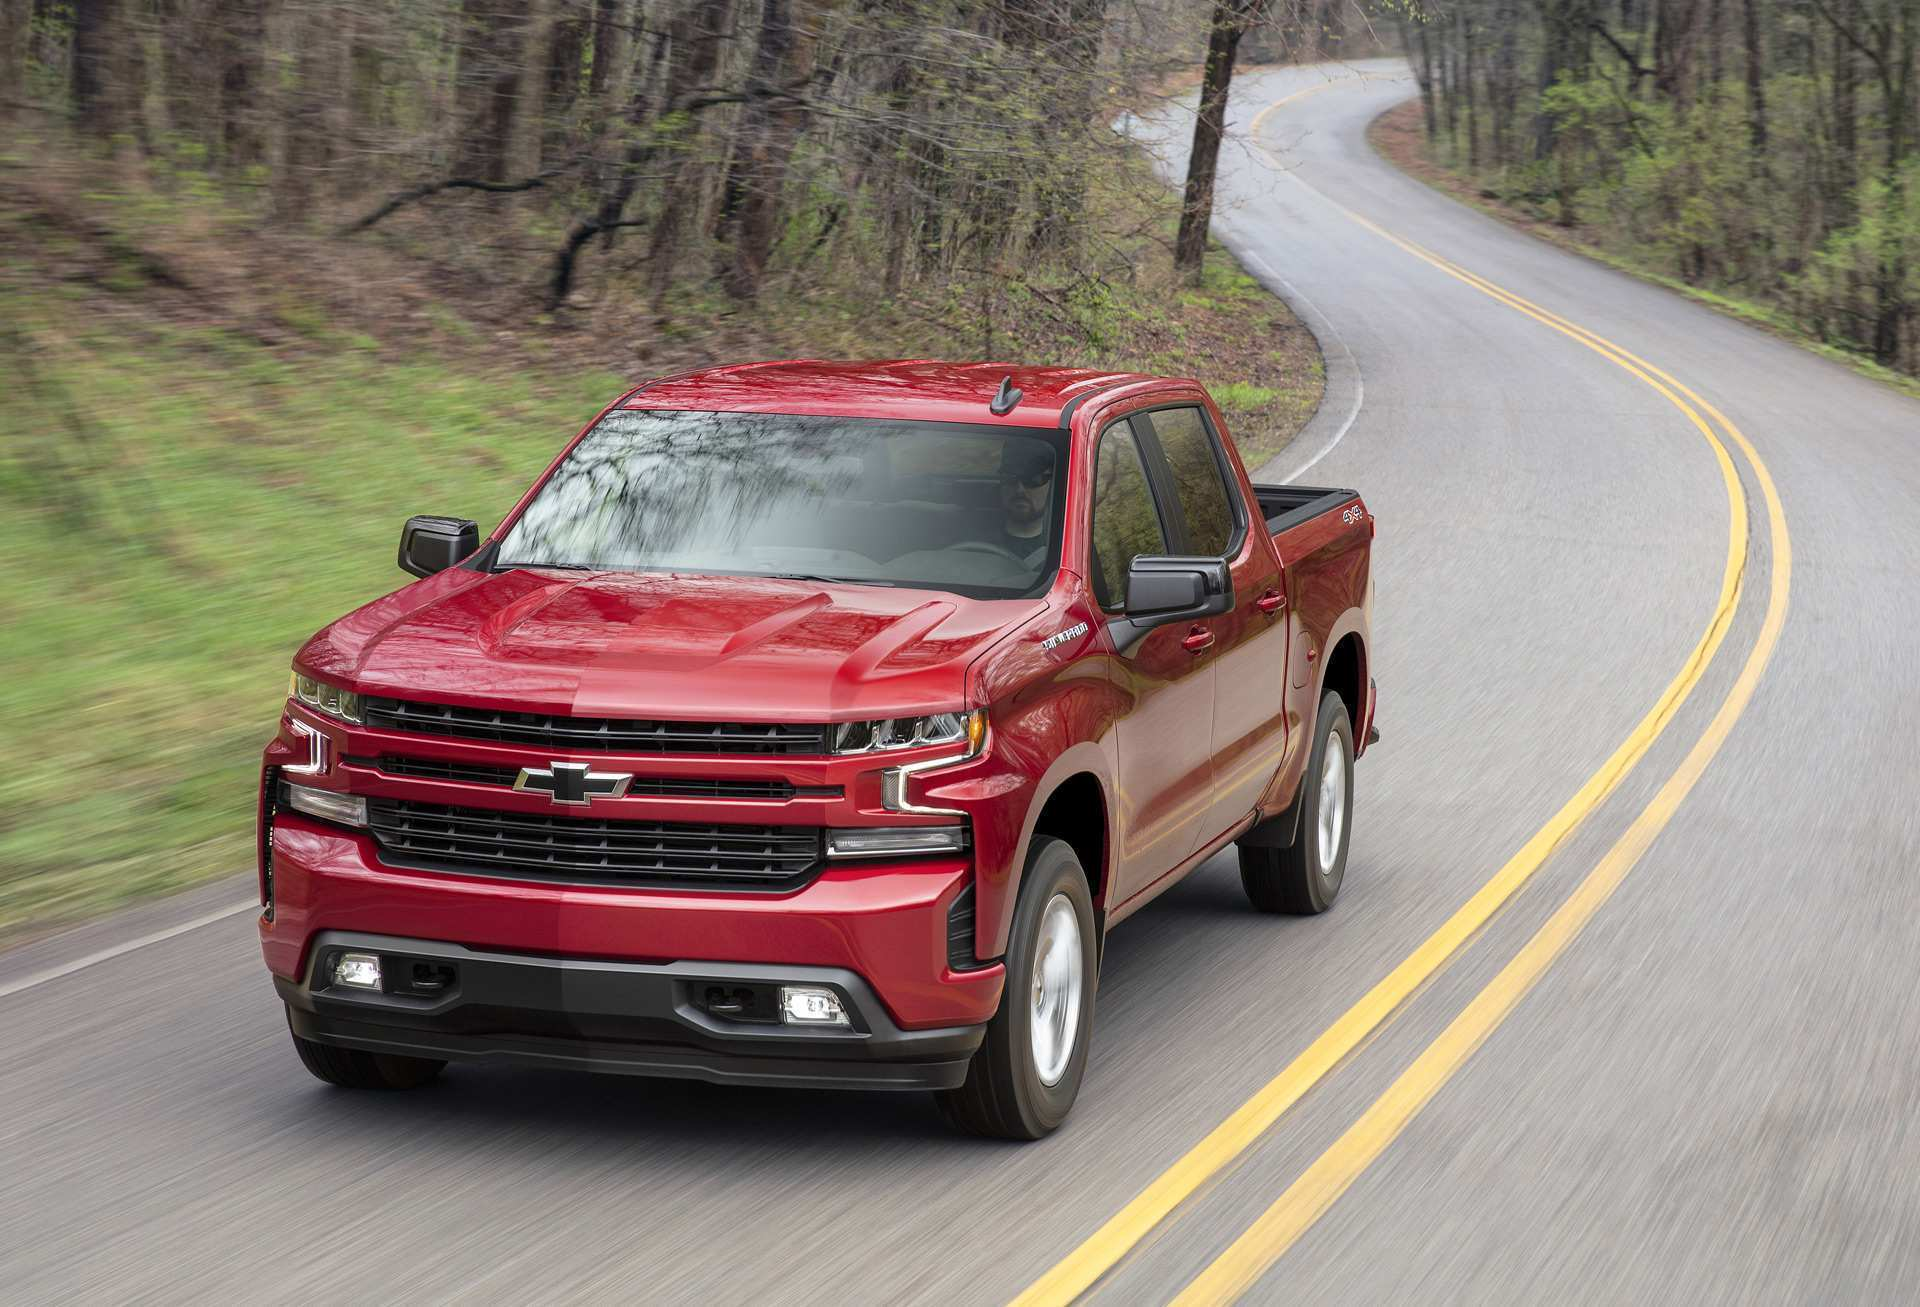 26 All New 2019 Chevy Silverado 1500 Price And Review